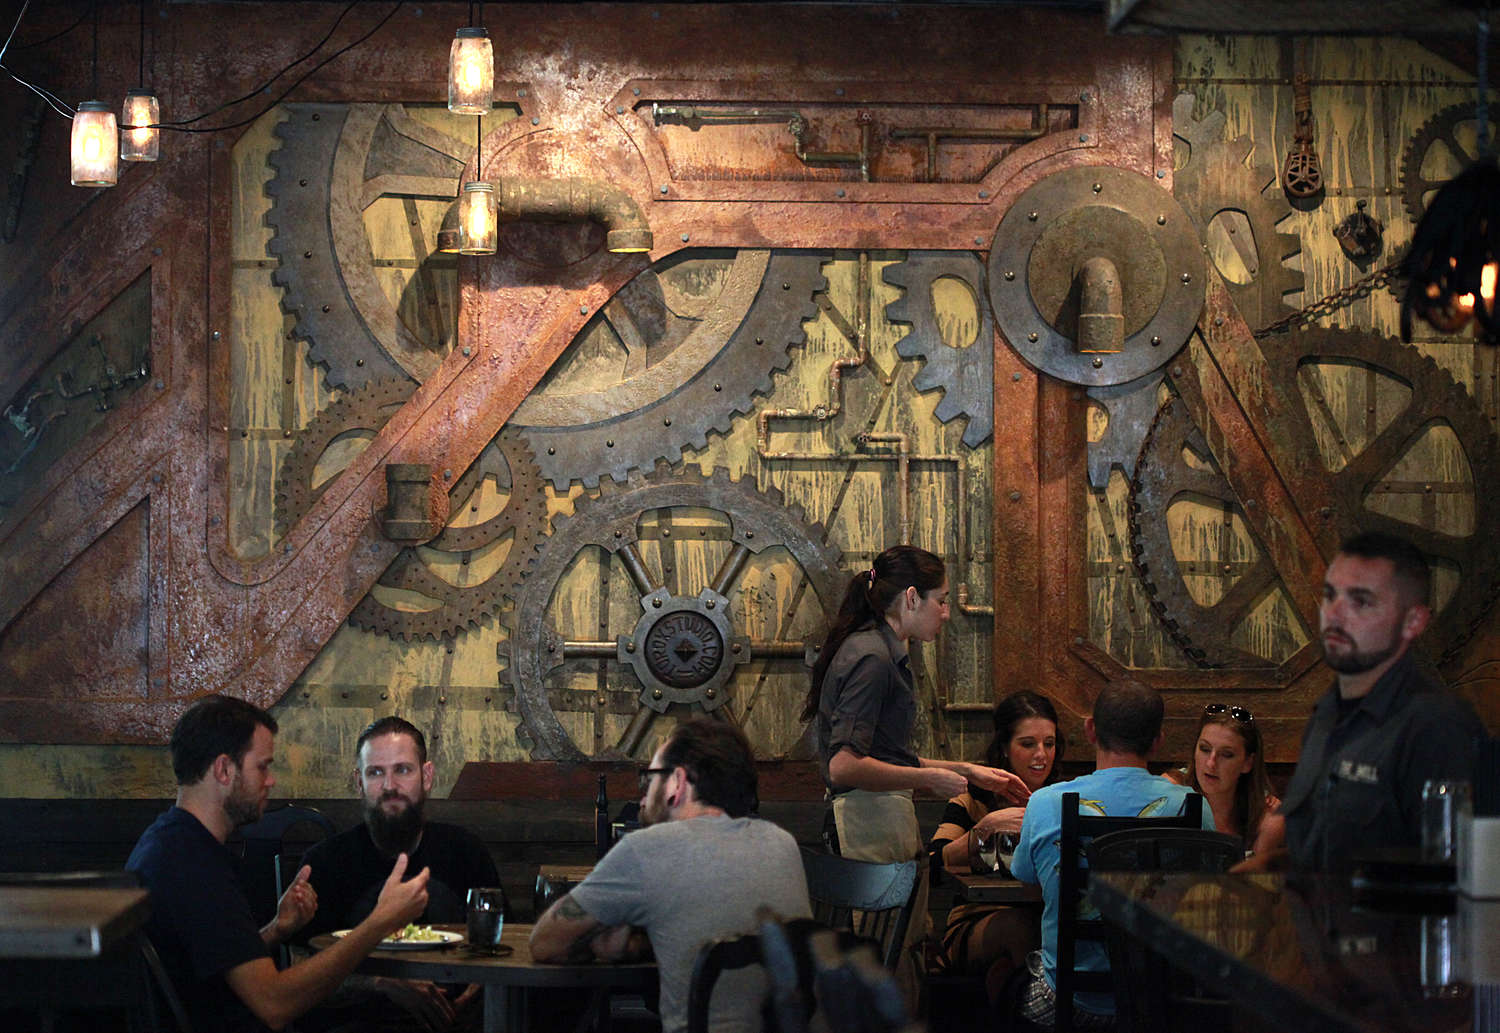 Diners at tables in front of a wall decorated with industrial gears and pipes